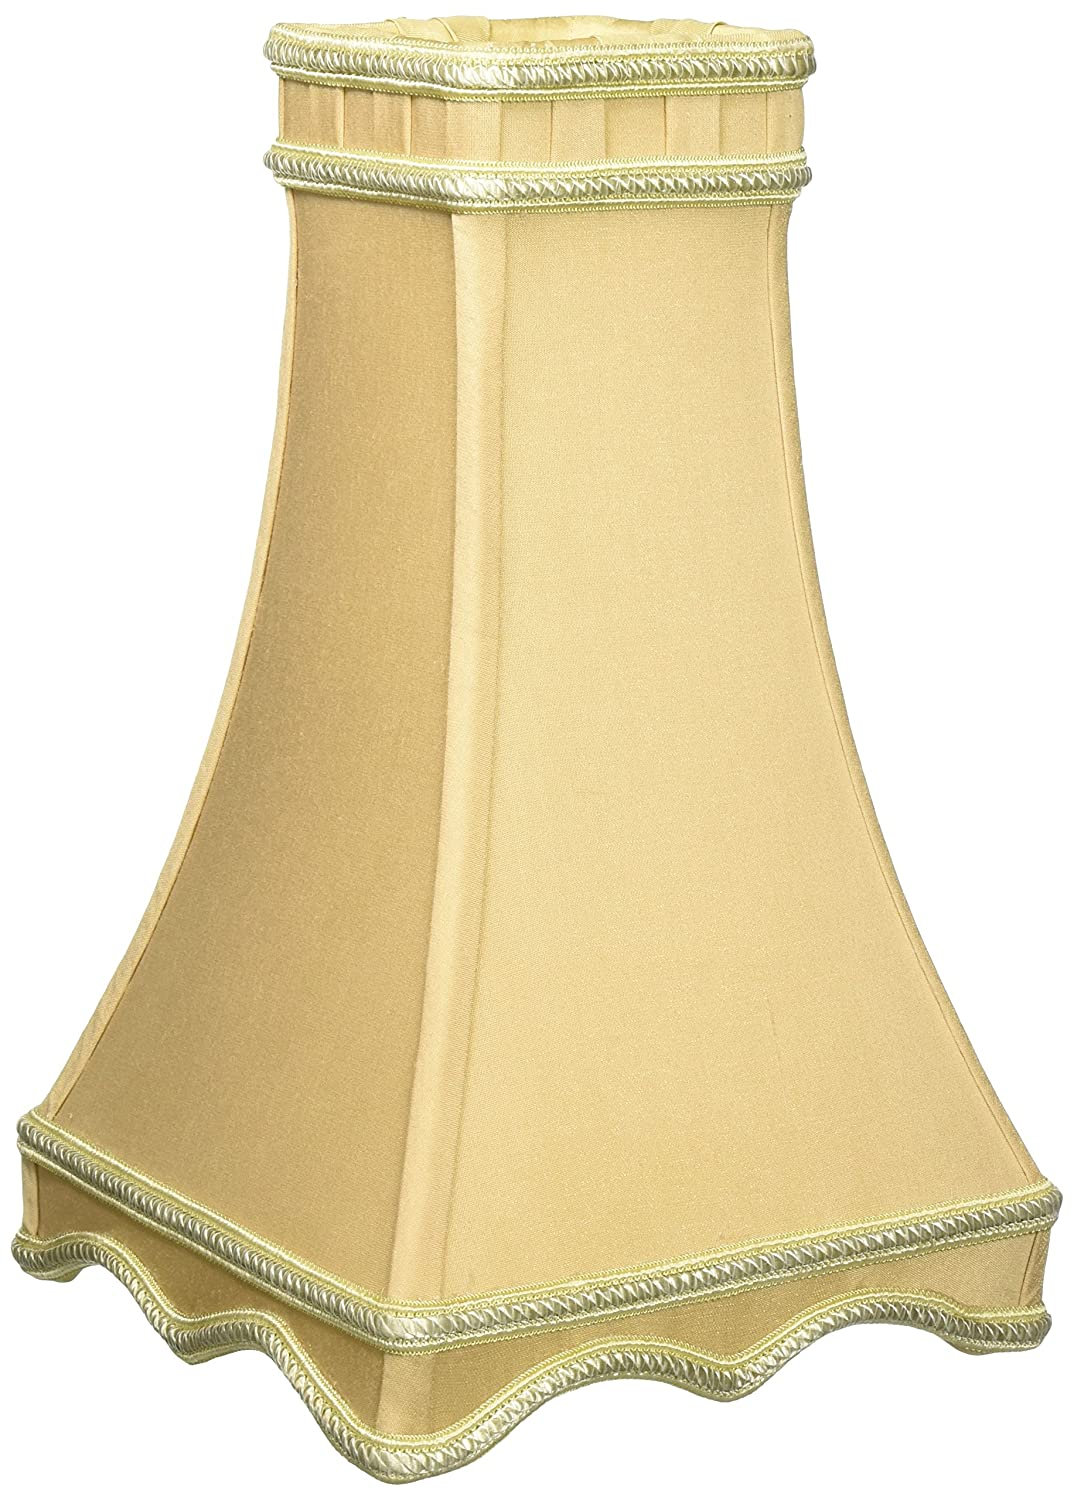 Antique Gold 3.5 x 7 x 12 Inc DS-34-7AGL Royal Designs Square Tower Designer Lamp Shade